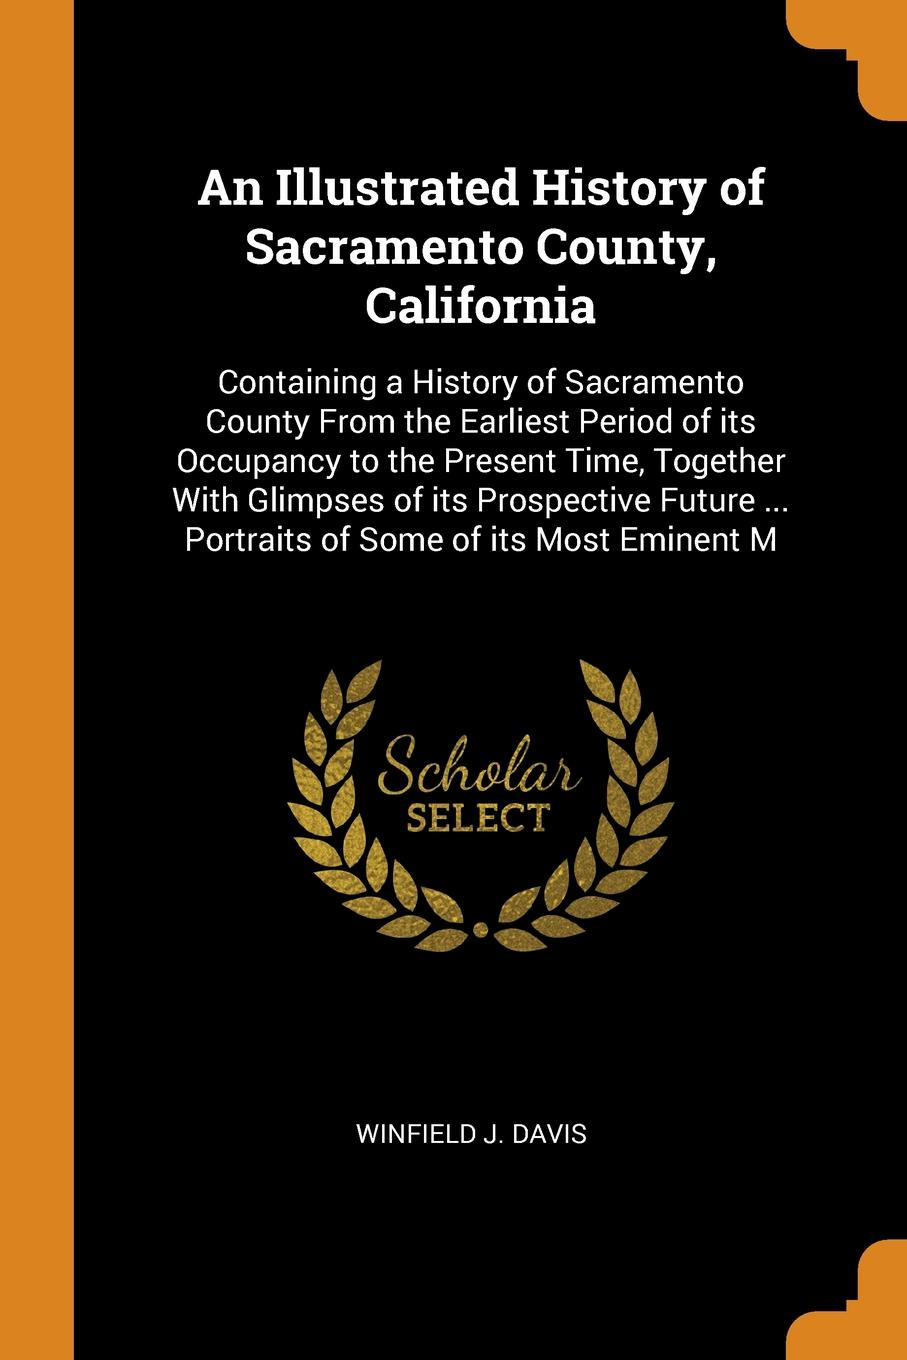 An Illustrated History of Sacramento County, California. Containing a History of Sacramento County From the Earliest Period of its Occupancy to the Present Time, Together With Glimpses of its Prospective Future ... Portraits of Some of its Most Em...